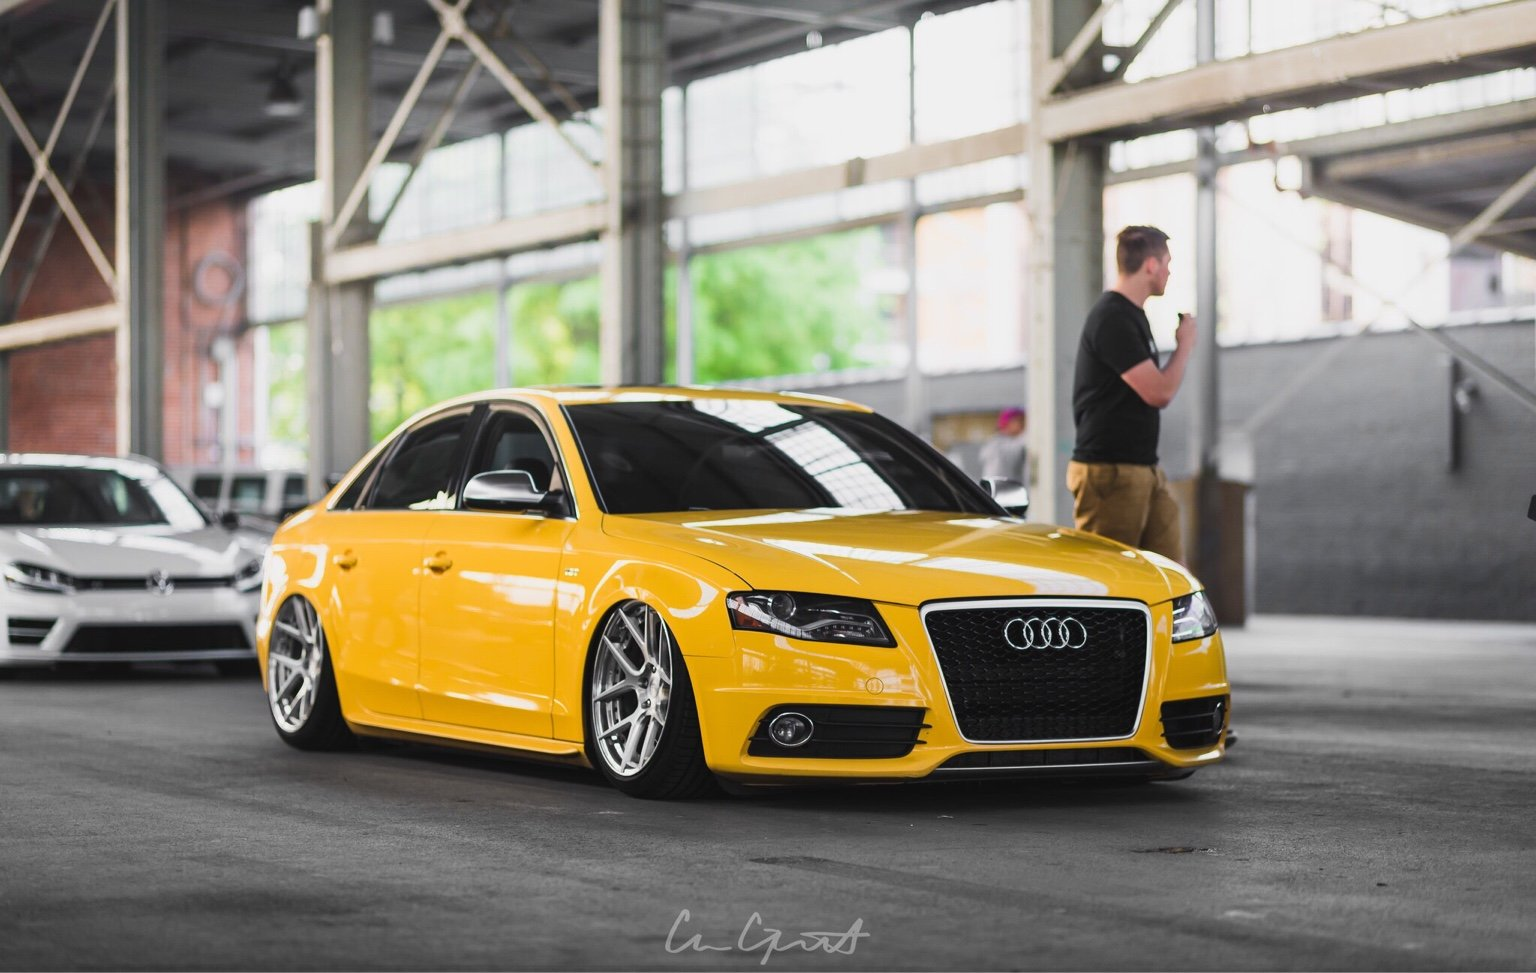 For Sale: FS: Imola Yellow B8 S4 (lots of mods)